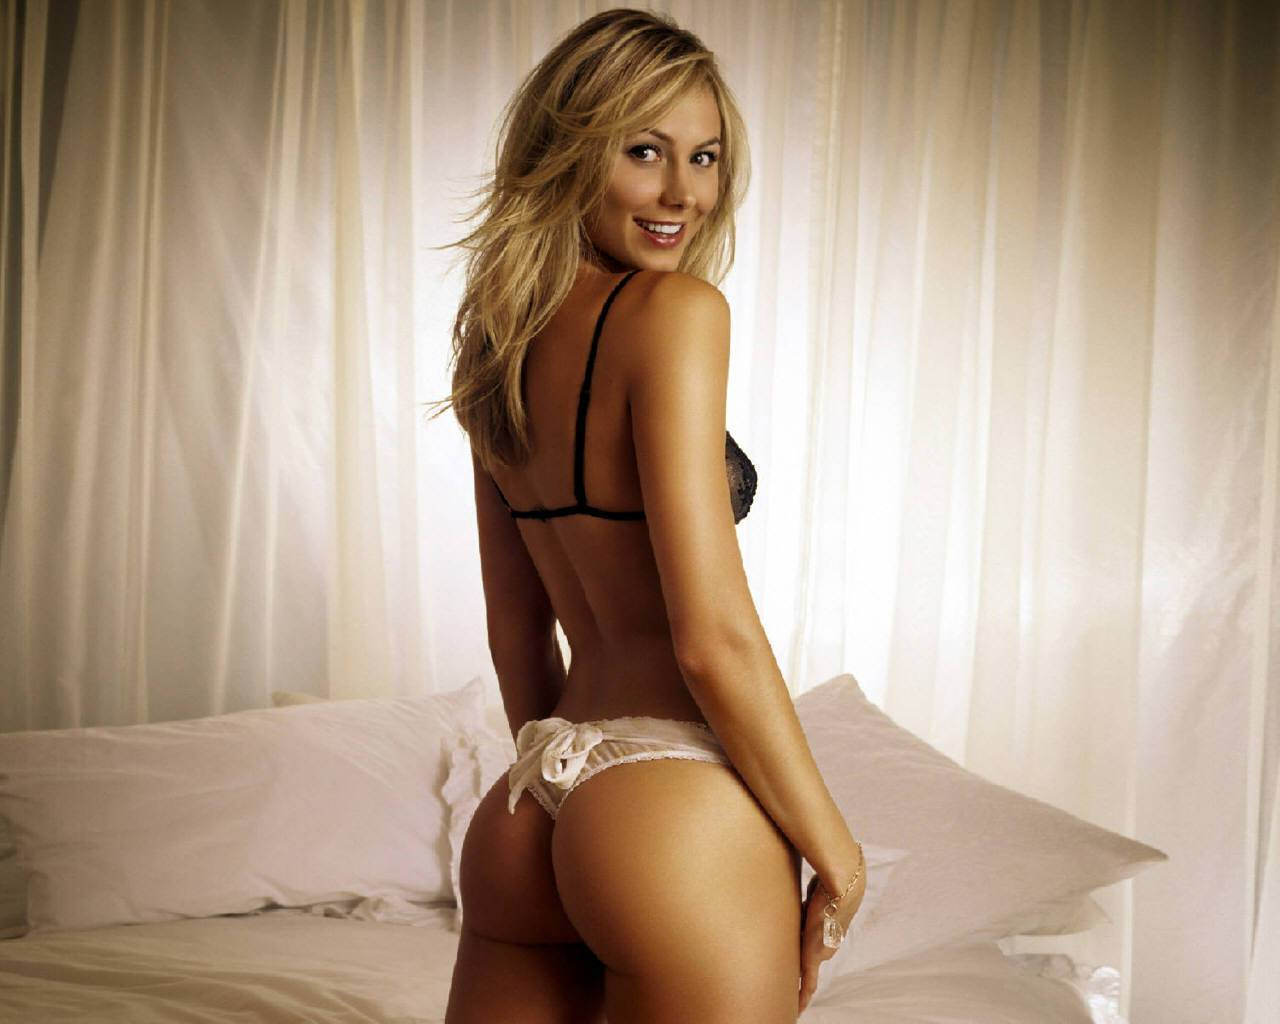 Stacy keibler nude porn naked question not